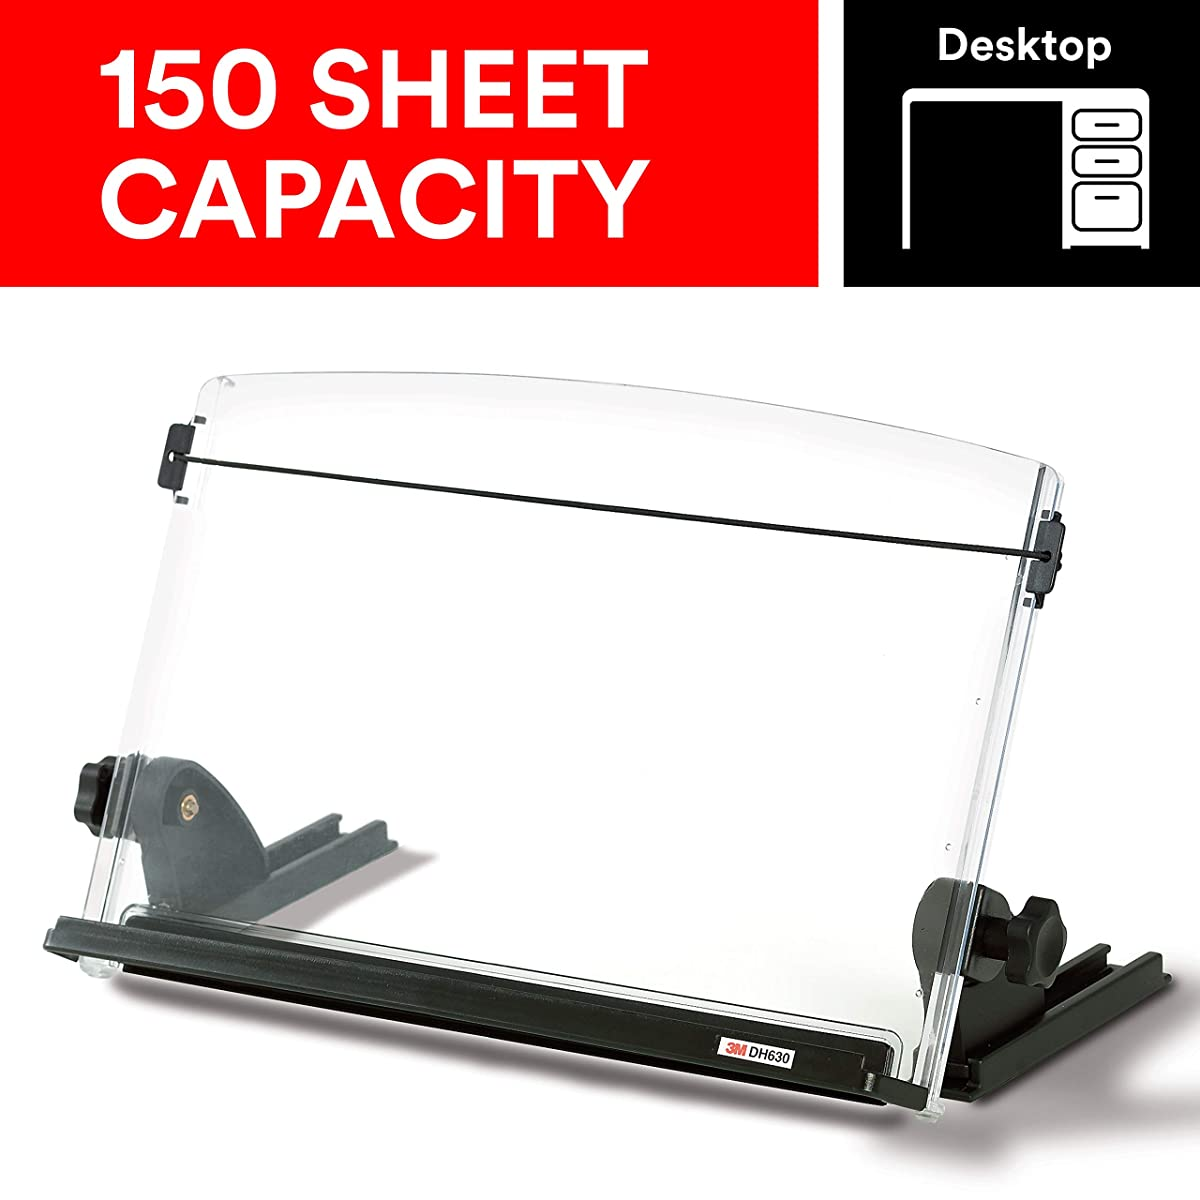 "3M Adjustable Document Copy Holder, In-line with Monitor Minimizing Head and Neck Movement, 150 Sheet Capacity Holds Sheets to Books, Elastic Line Guide Keeps Pages Open, 14"" Wide, Black (DH630)"